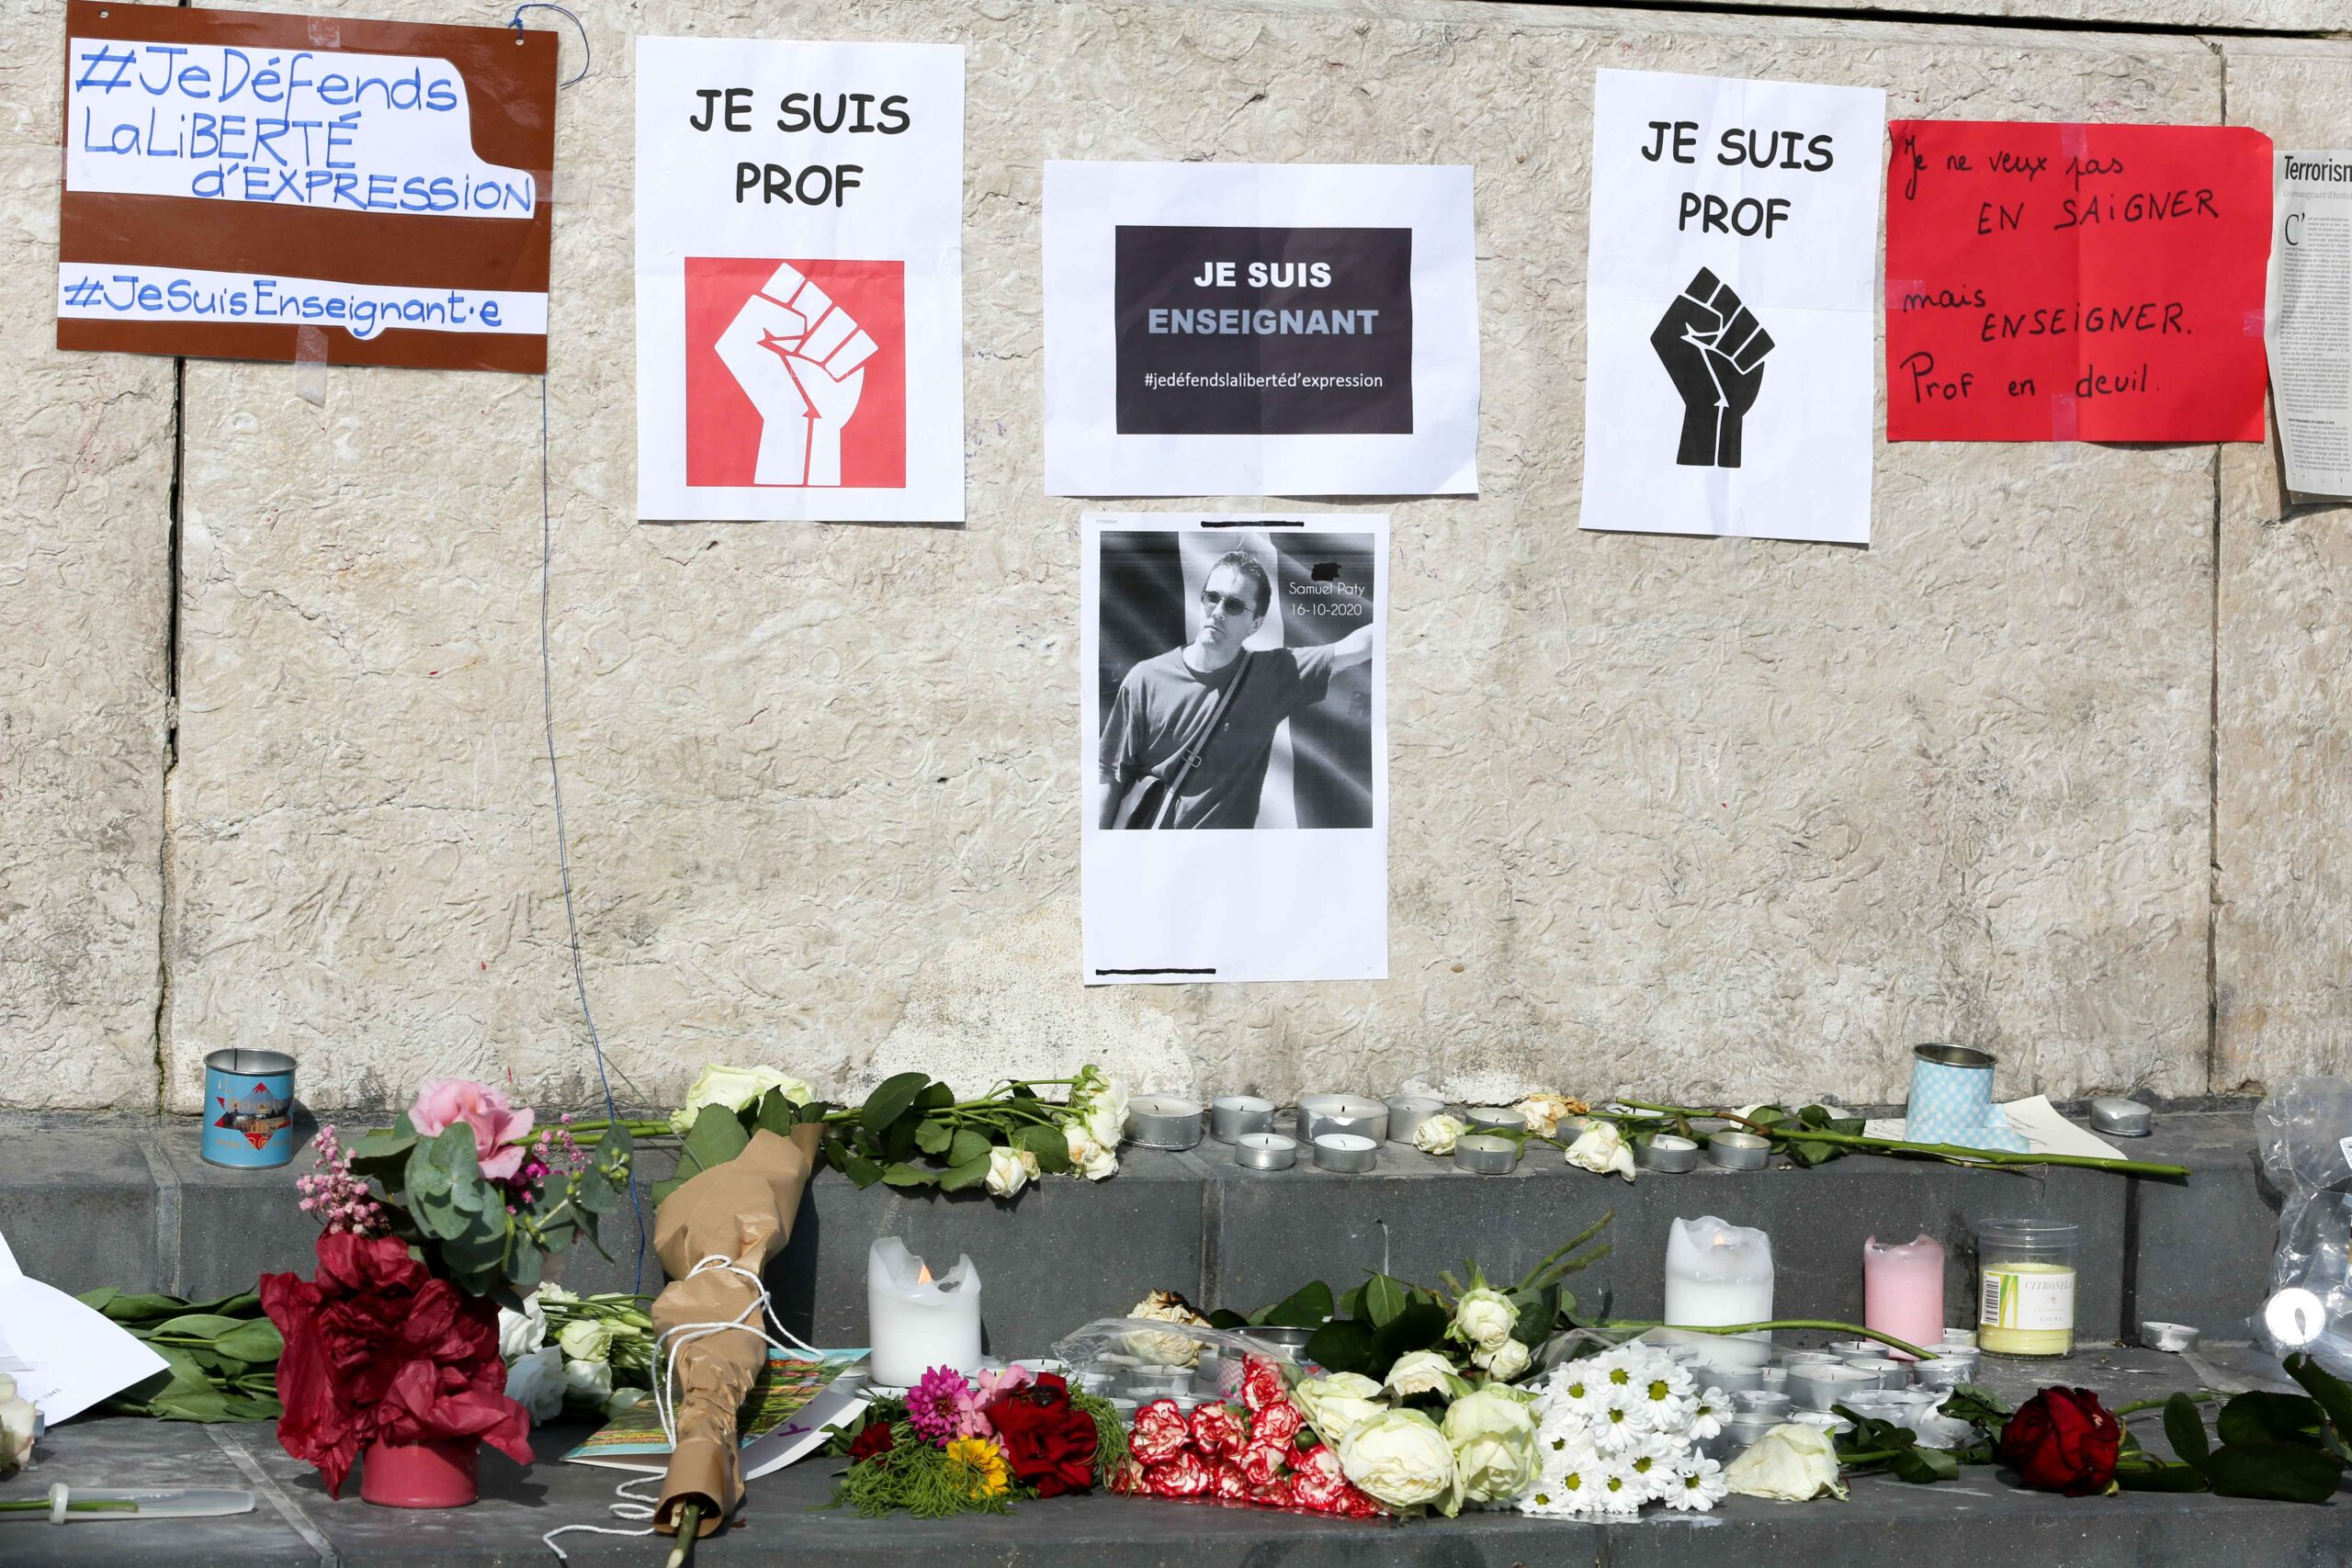 Flowers are placed in front of the portrait of history teacher Samuel Paty as people gather on Place de la Republique in Paris on October 18, 2020, two days after he was beheaded by an attacker who was shot dead by policemen. Thousands of people rally in P